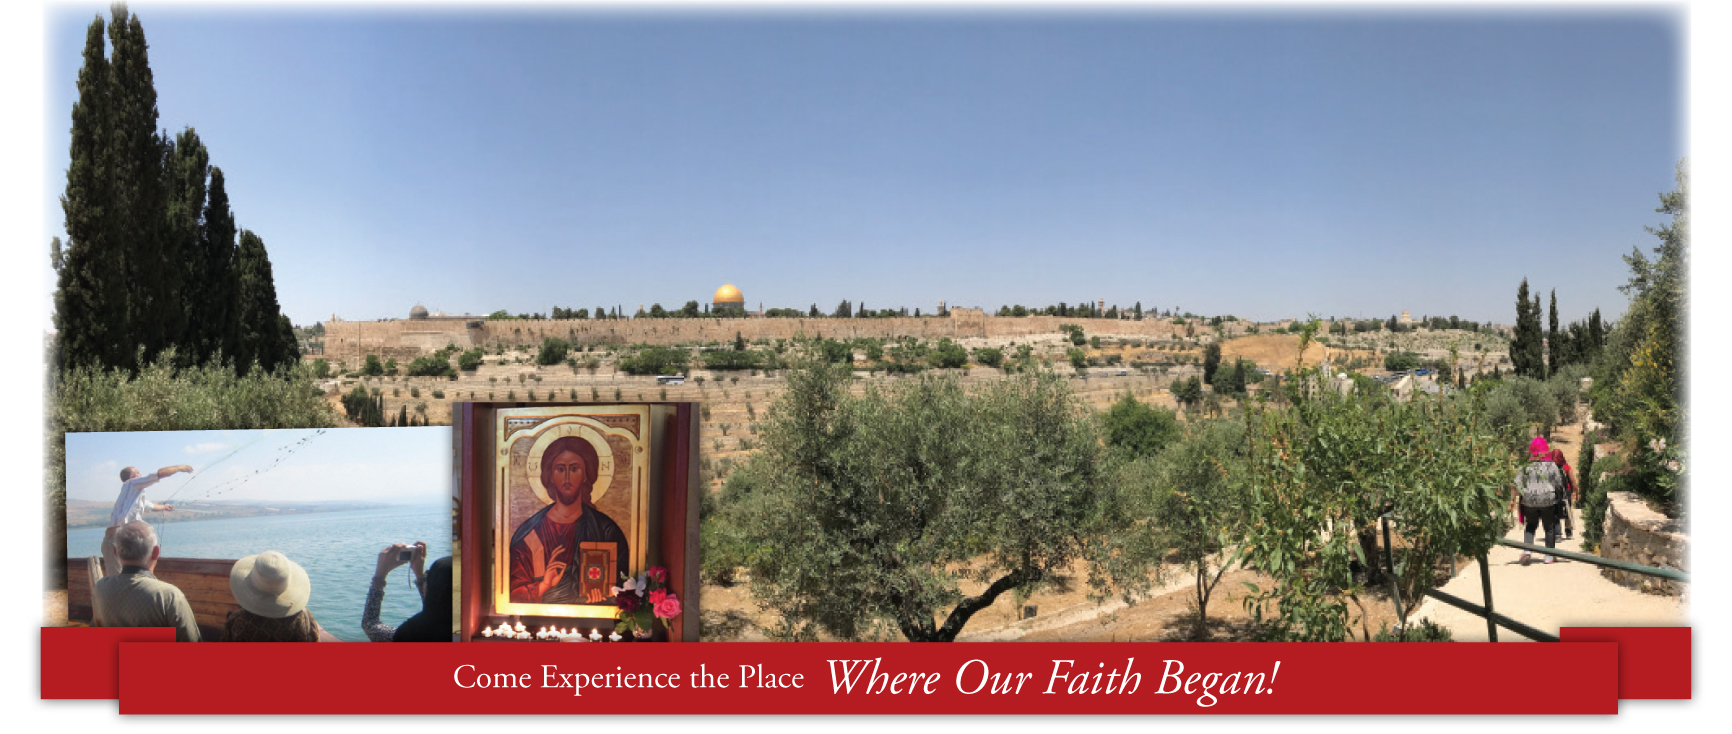 Come experience the place where our faith began!